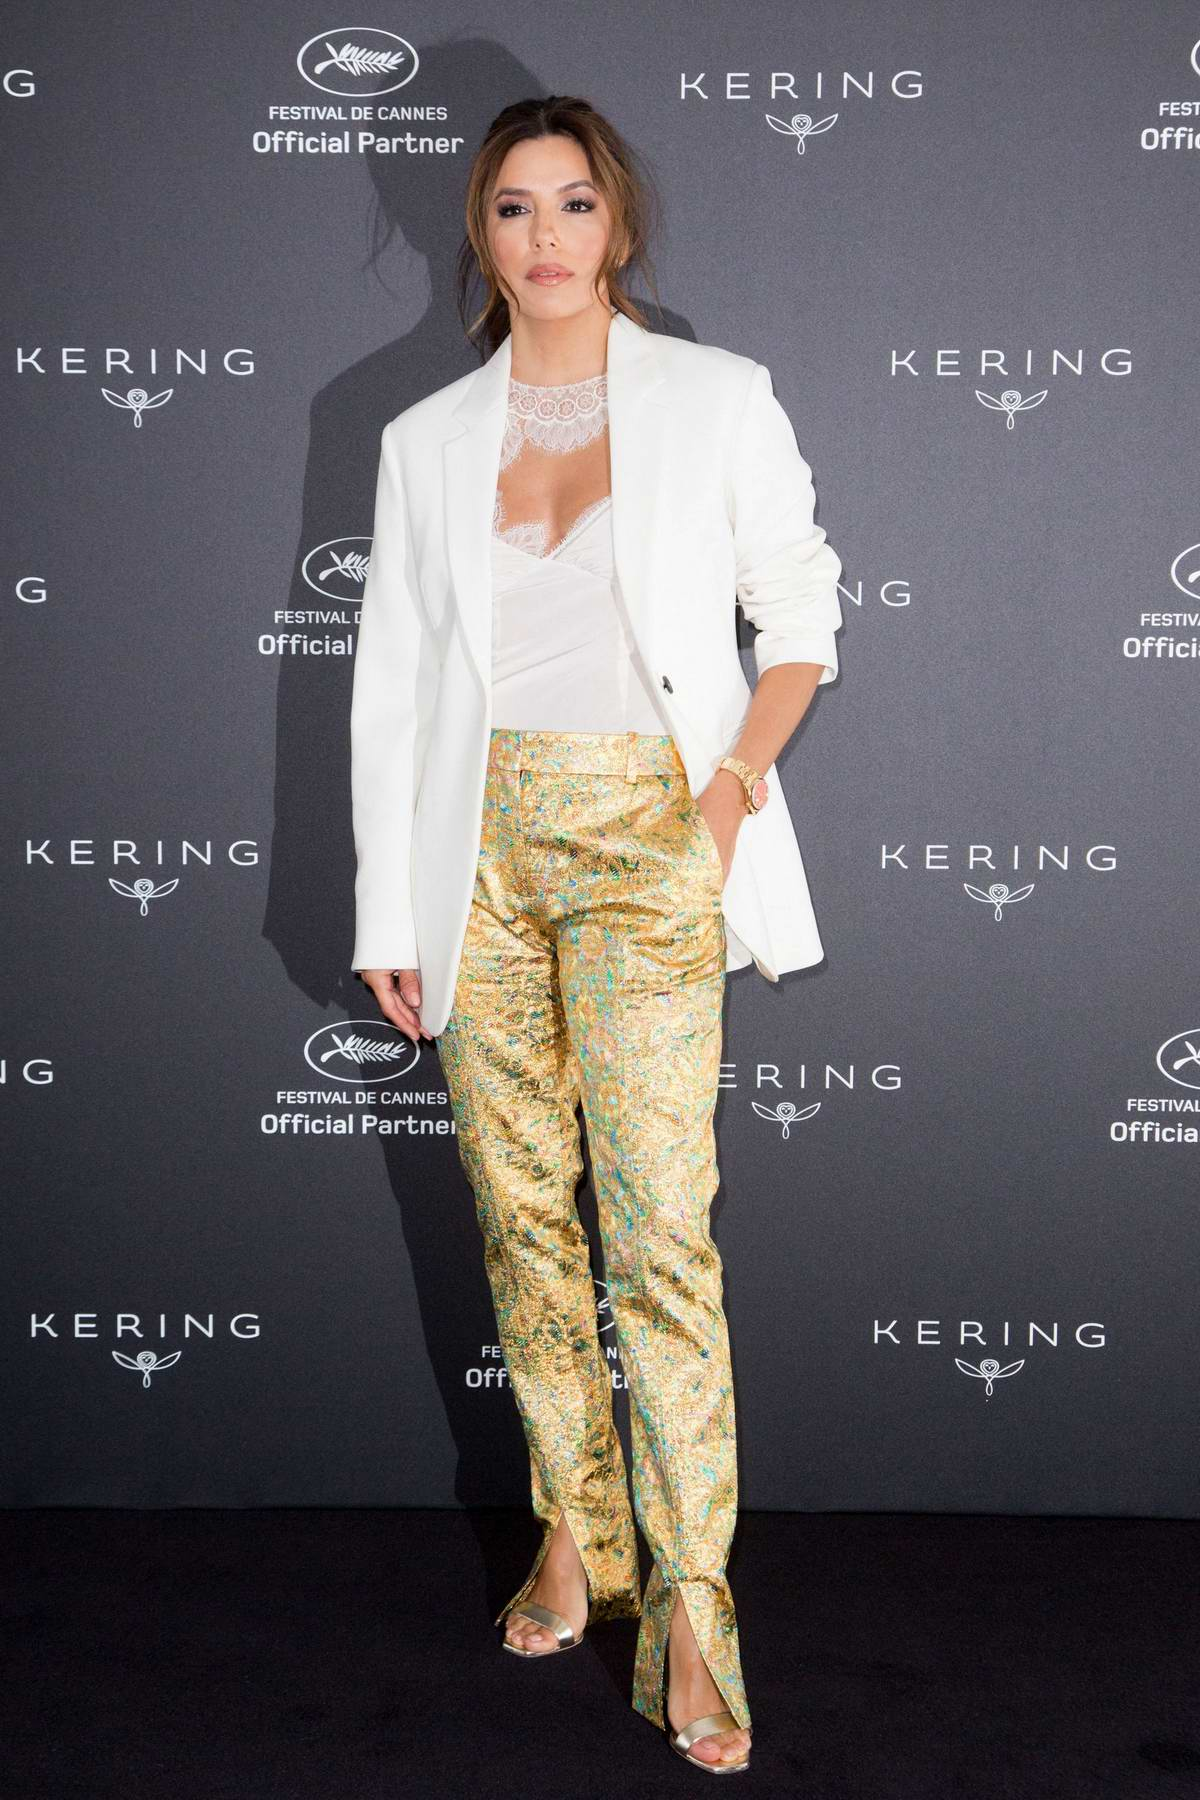 Eva Longoria attends the Kering Conference at Majestic Hotel during 72nd Cannes film festival in Cannes, France